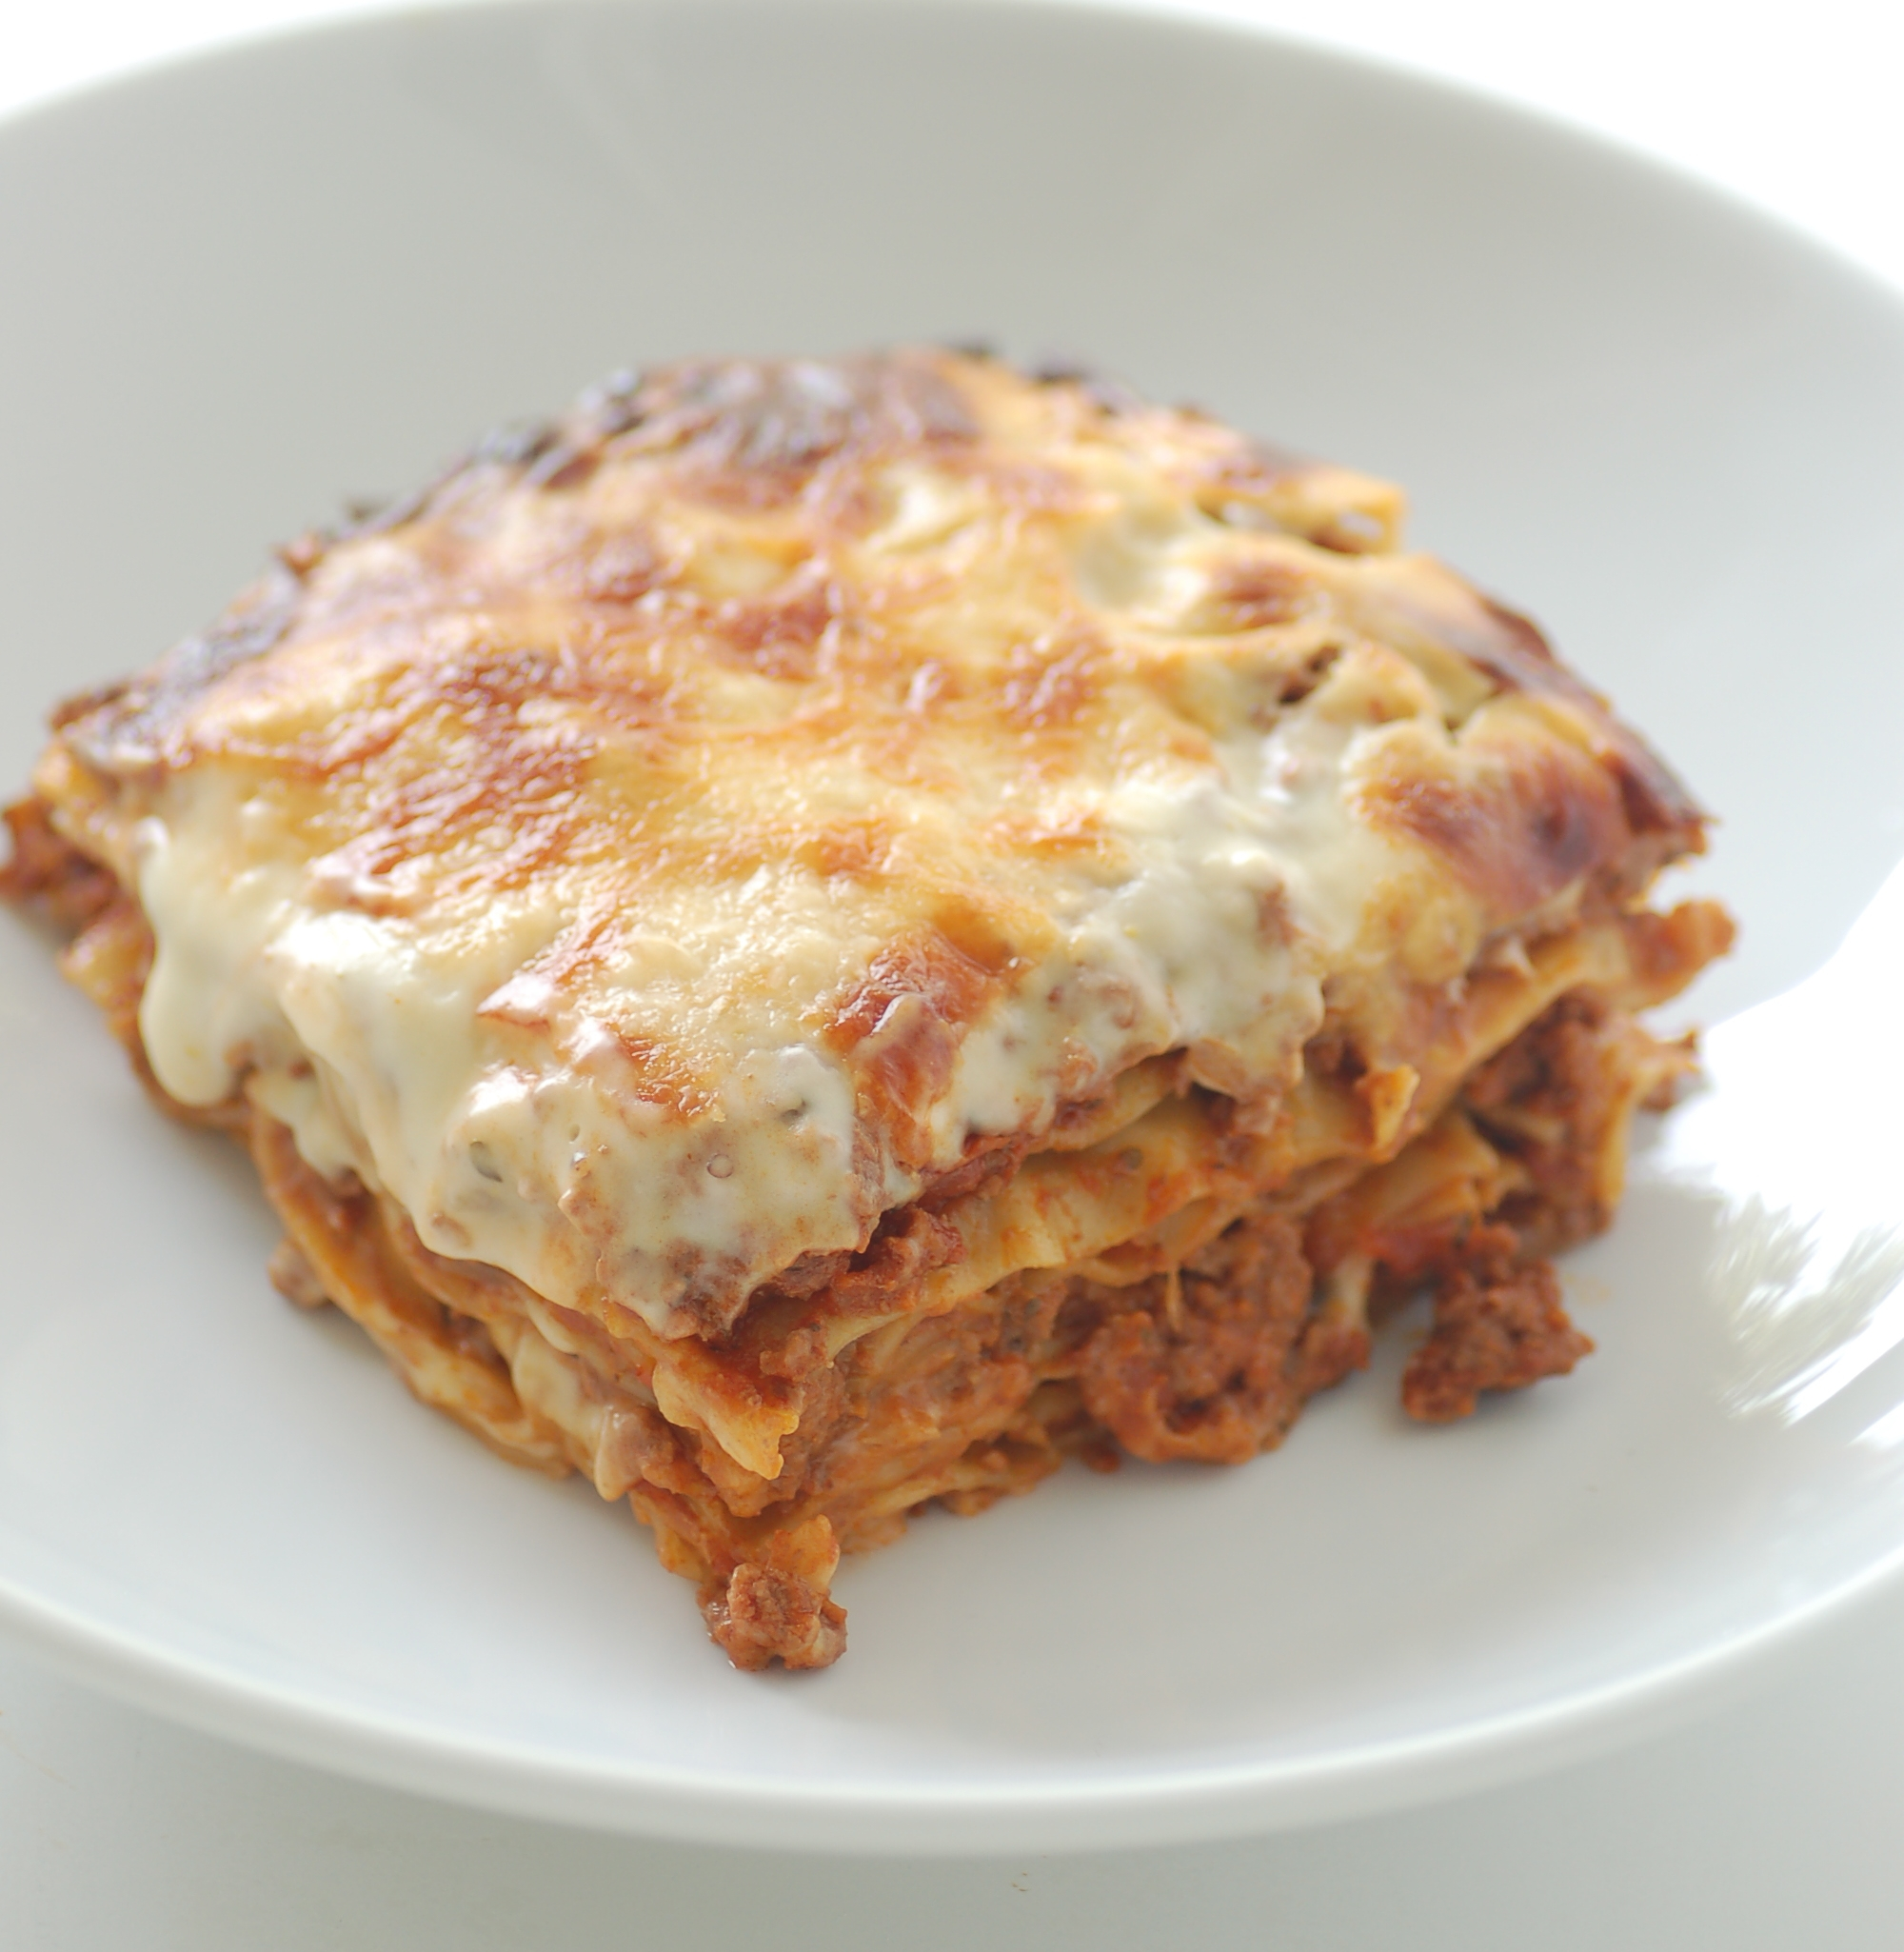 File:Lasagne - stonesoup.jpg - Wikipedia, the free encyclopedia